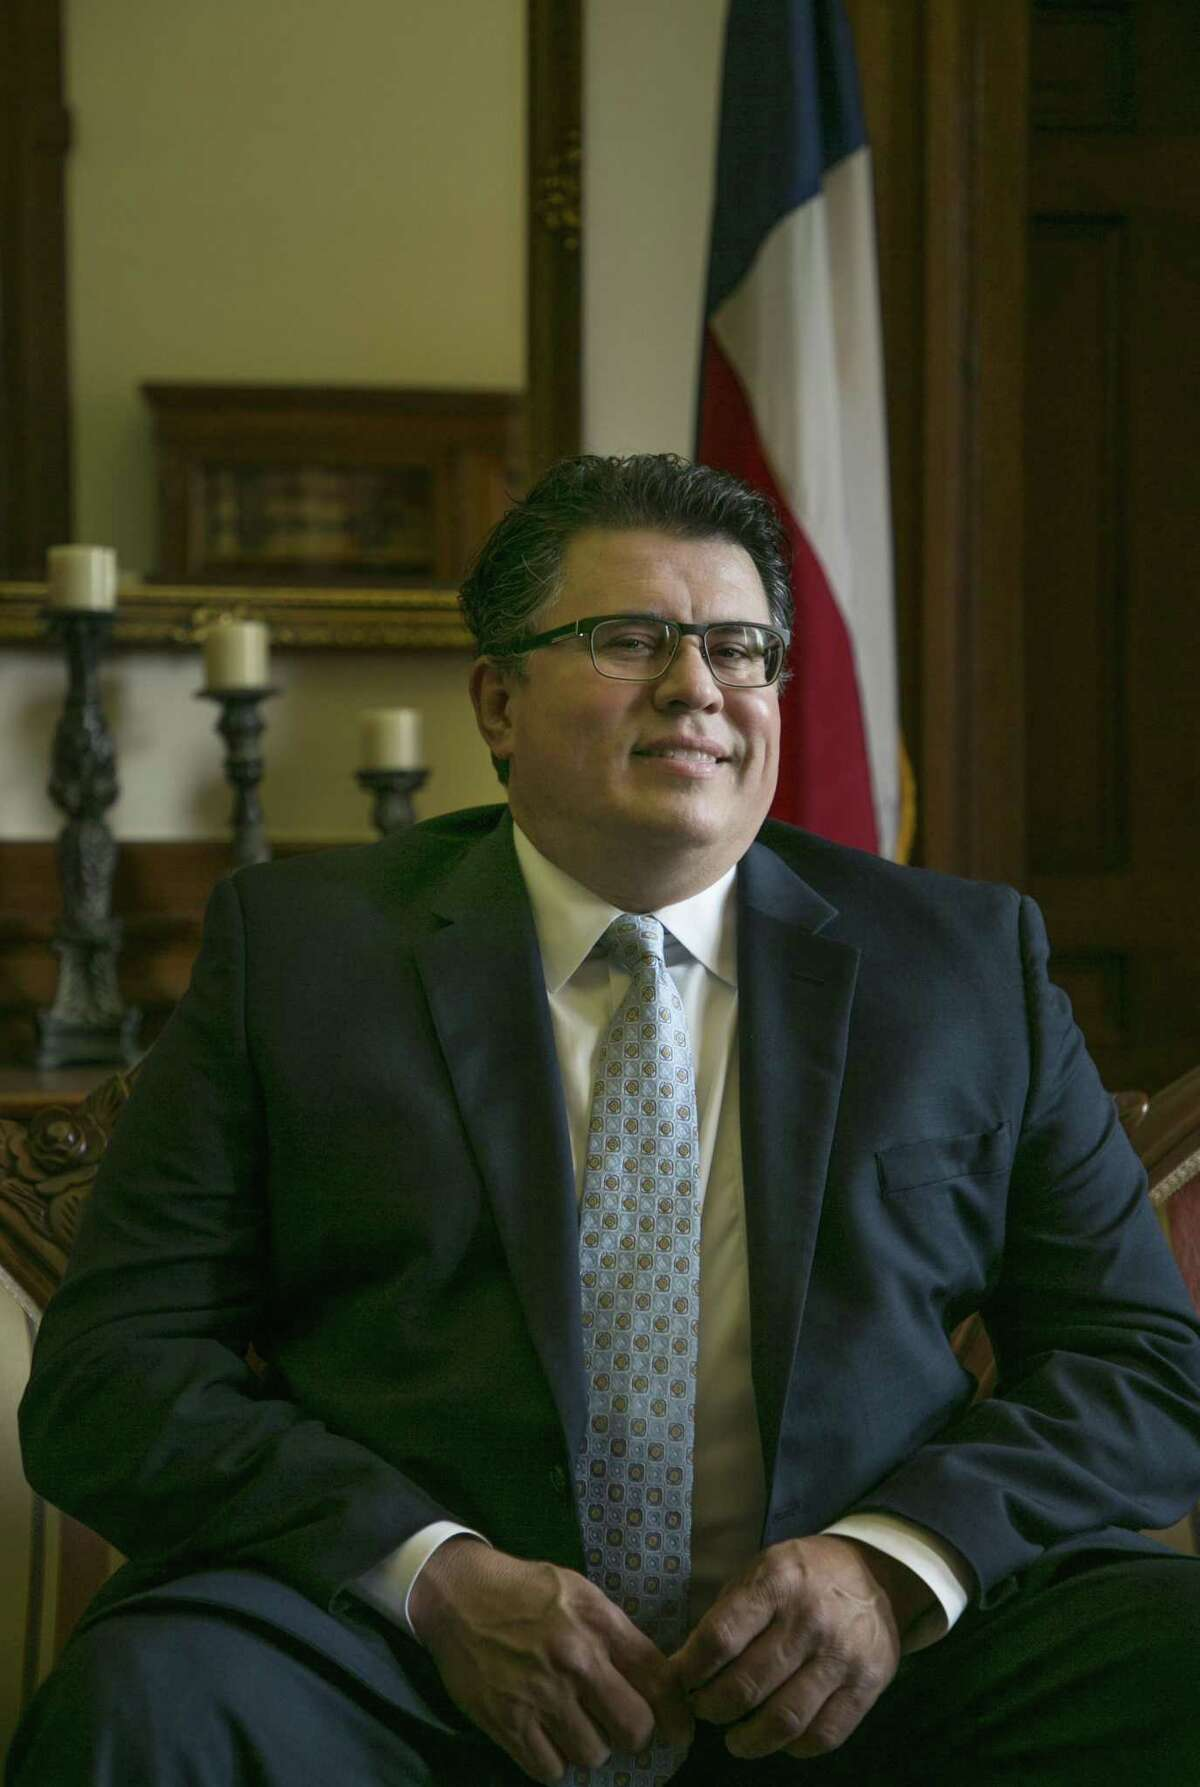 Secretary of State Rolando Pablos sits for a portrait in his office at the Texas State Capitol in Austin, Texas on Wednesday July 12, 2017. For Texas Power Brokers series photo by Kelly West